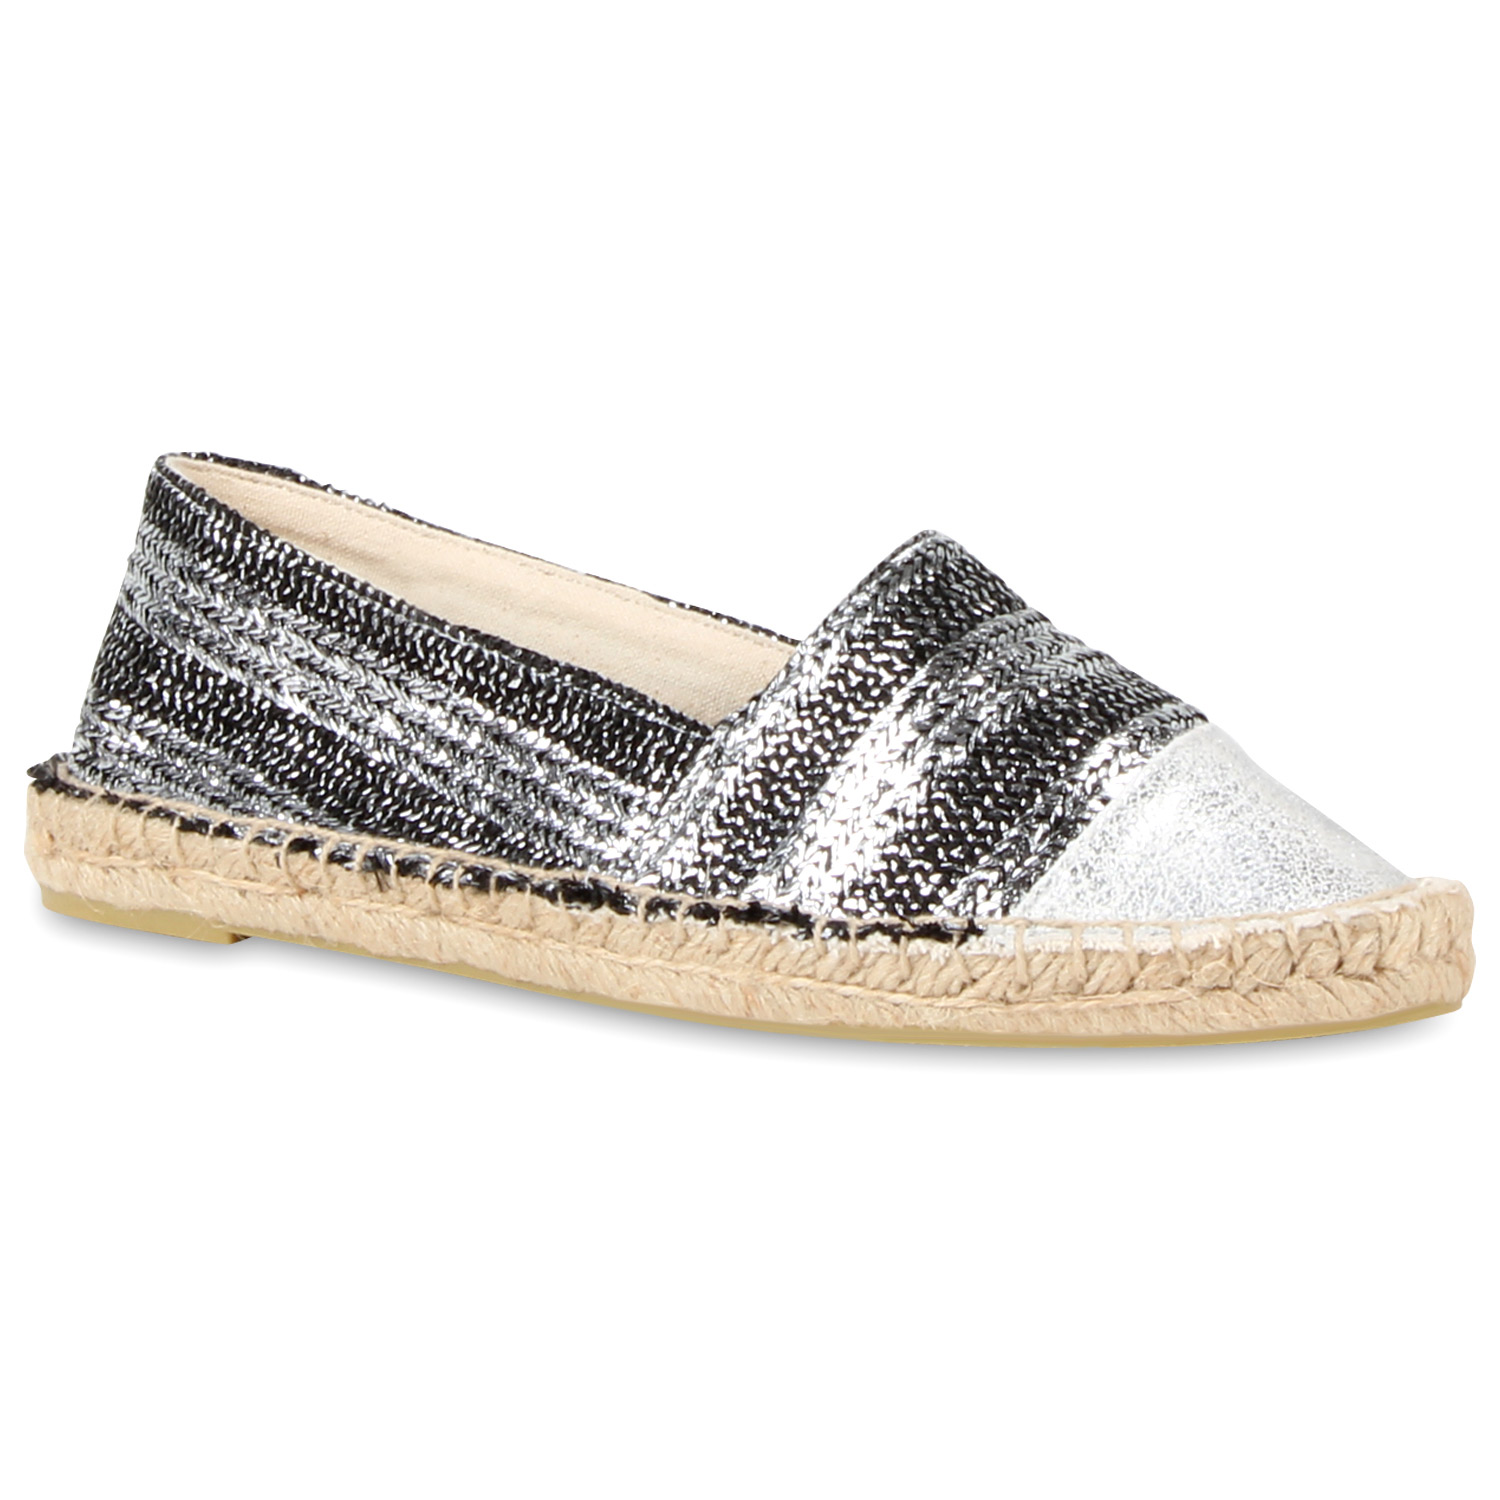 modische damen bast slipper glitzer espadrilles sommer schuhe 811264 ebay. Black Bedroom Furniture Sets. Home Design Ideas